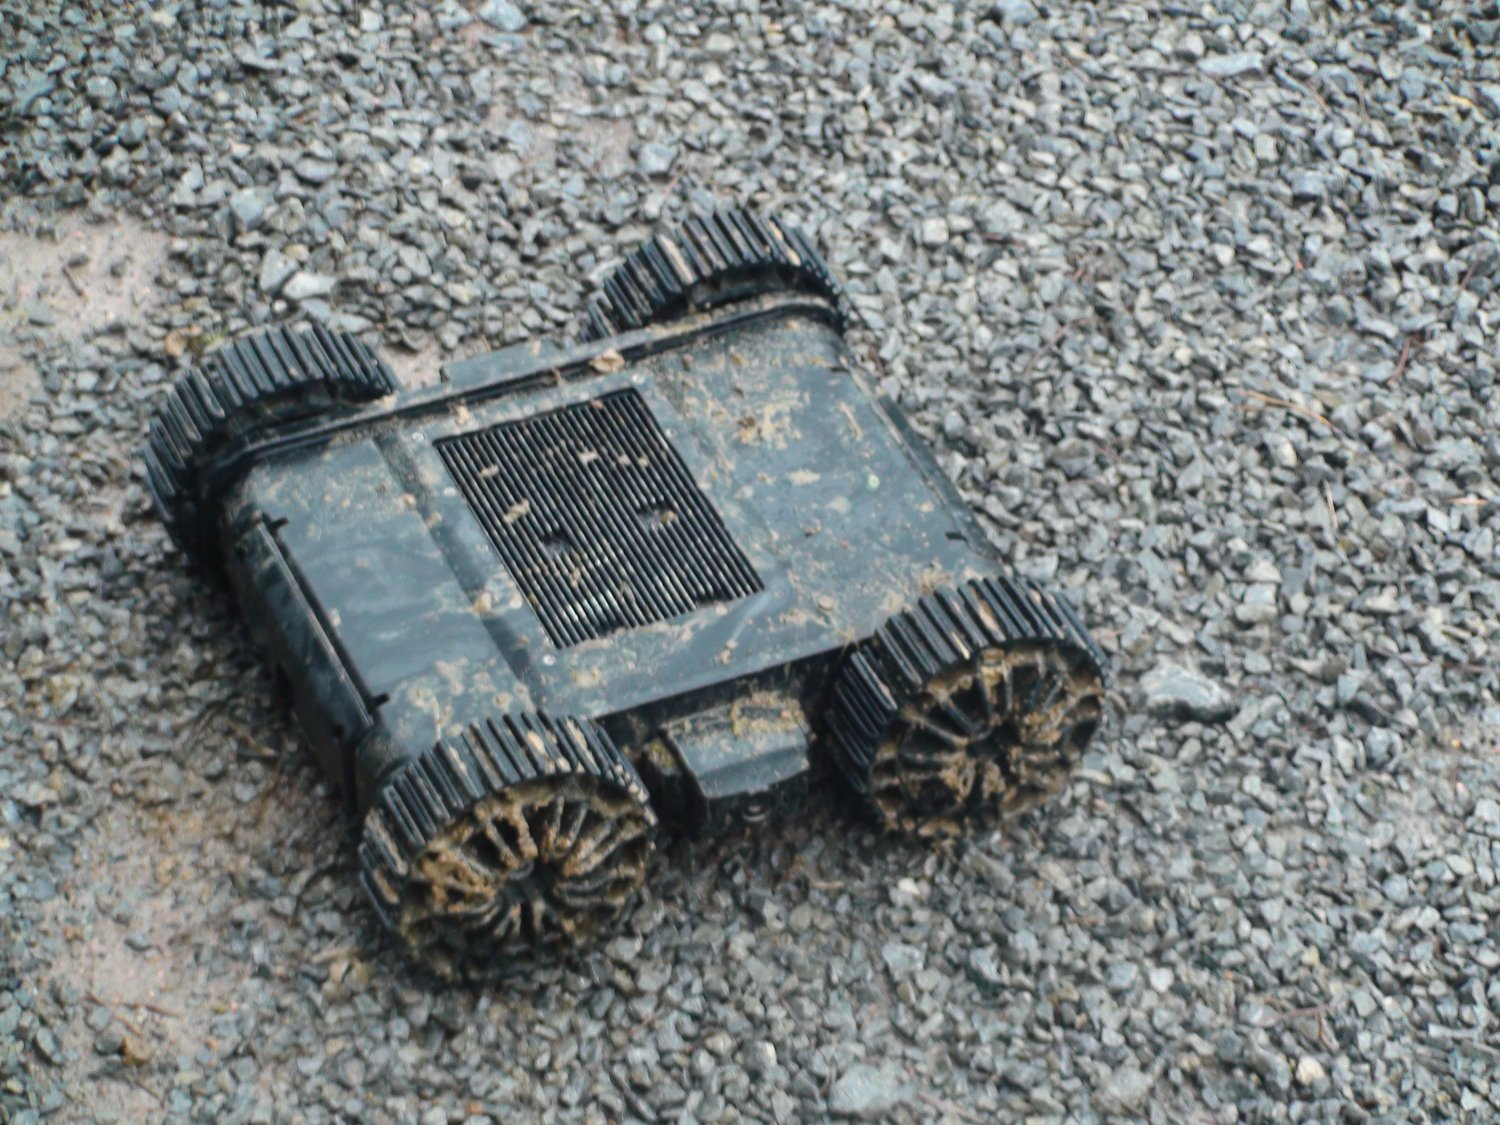 MacroUSA Armadillo V2 Throwable MUGV Micro Unmanned Ground Vehicle Tactical Robot Field Demo 2 <!  :en  >MacroUSA Armadillo V2 Throwable Micro Unmanned Ground Vehicle (MUGV) Tactical Robot Wins Innovation Award at  Military European Land Robot (M ELROB) 2010 Trial/Competition <!  :  >